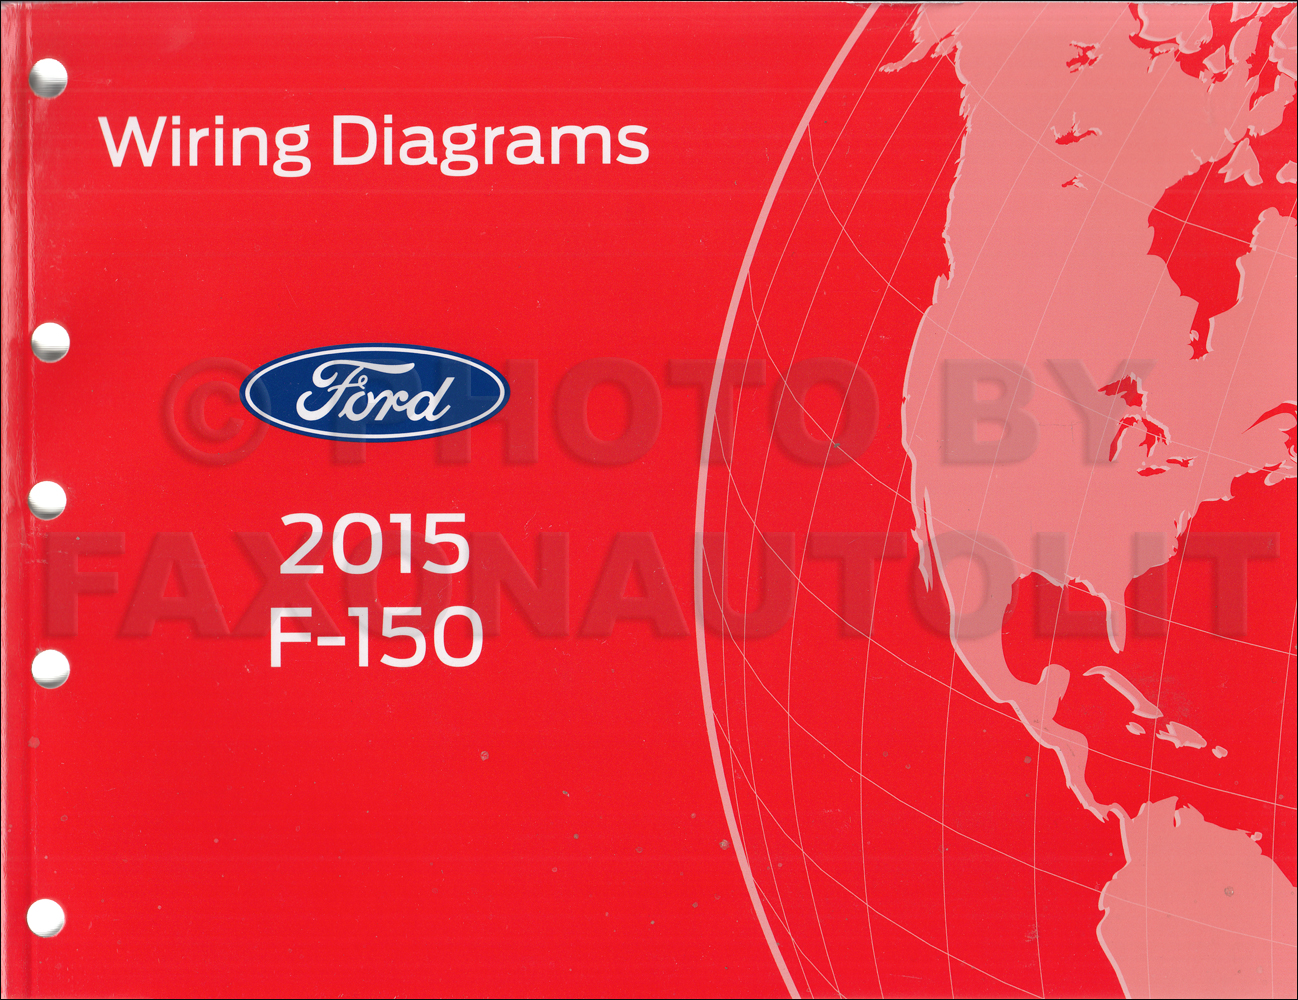 Wiring Diagram Wiring Diagram Photos For Help Also Ford F 150 Wiring